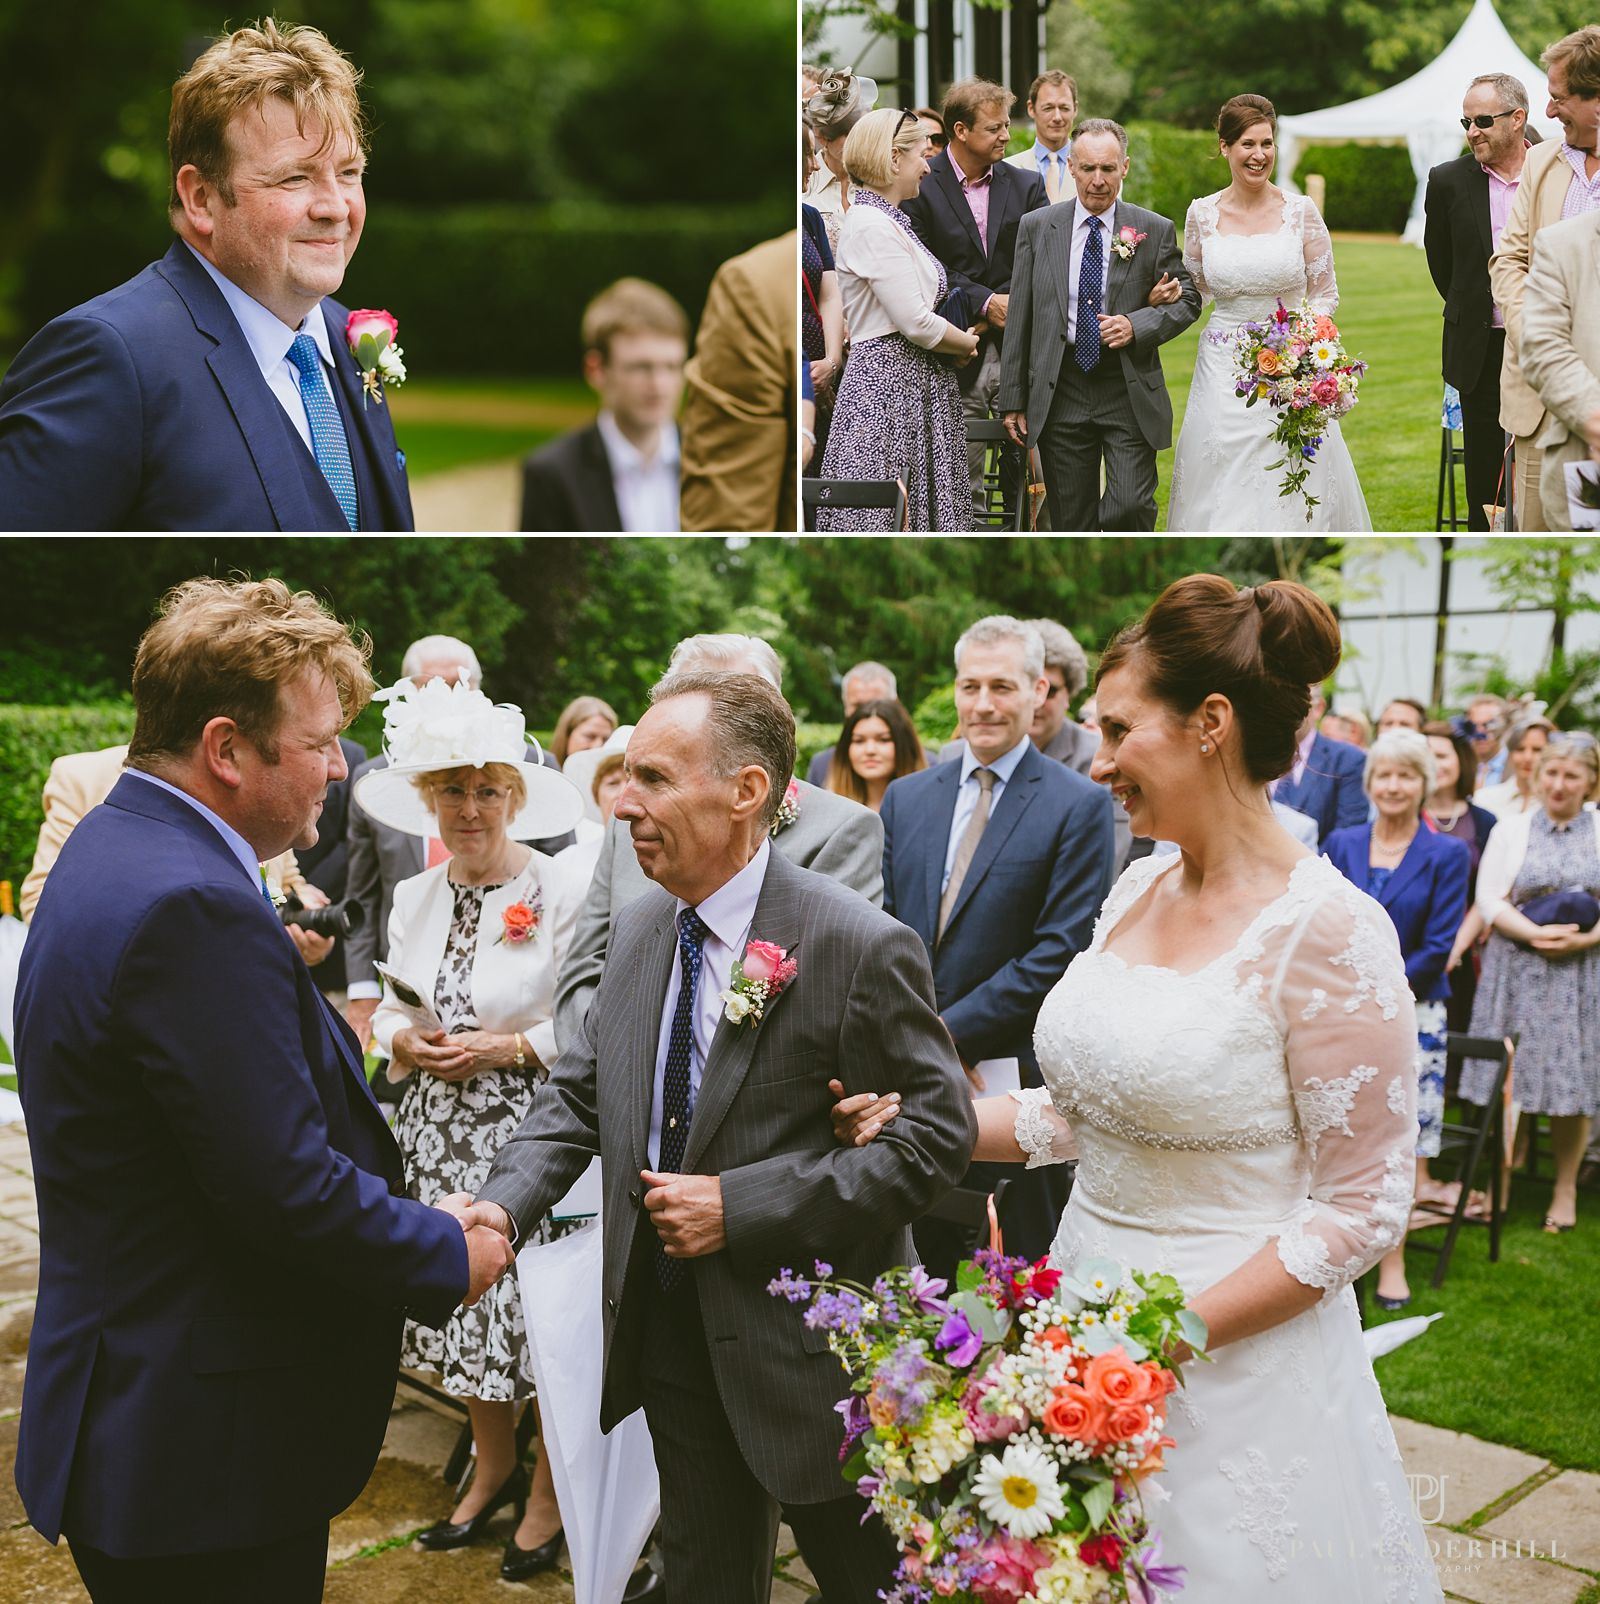 Reportage wedding photography Wiltshire